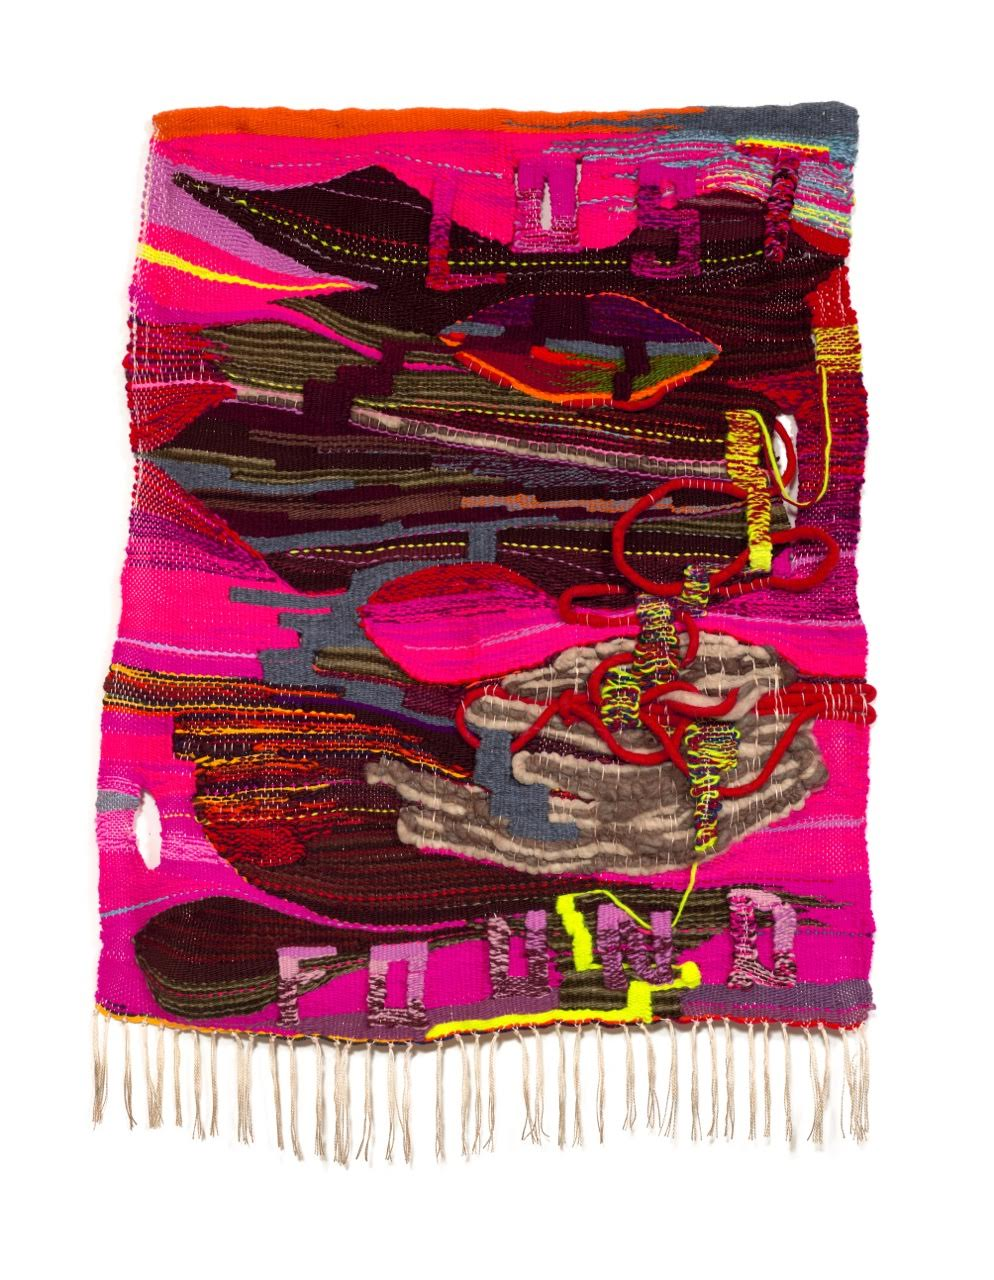 "Terri Friedman Lost & Found, 2018, 48"" x 32"", wool, cotton, acrylic, metallic fibers, $6000"